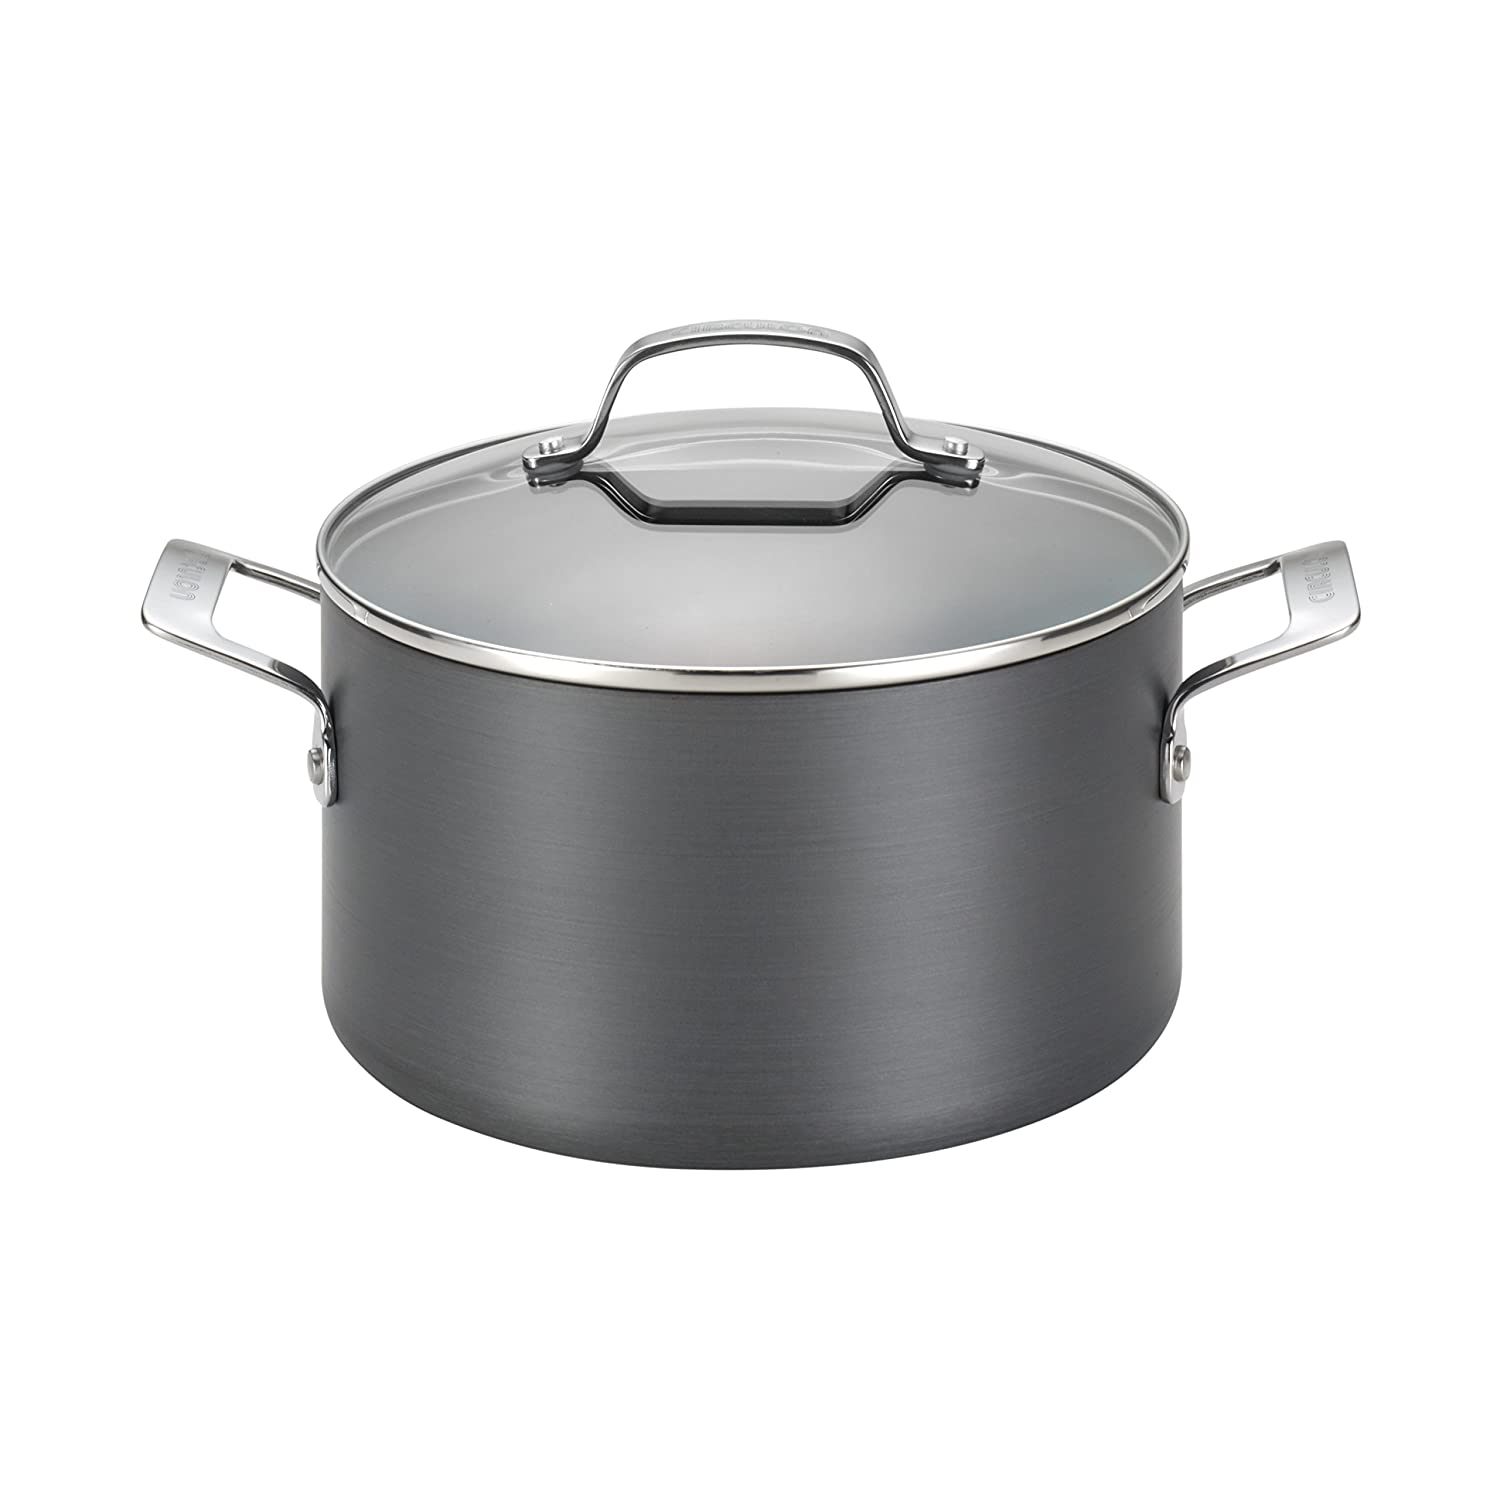 Circulon Genesis Hard-Anodized Nonstick 4.5-Quart Covered Dutch Oven